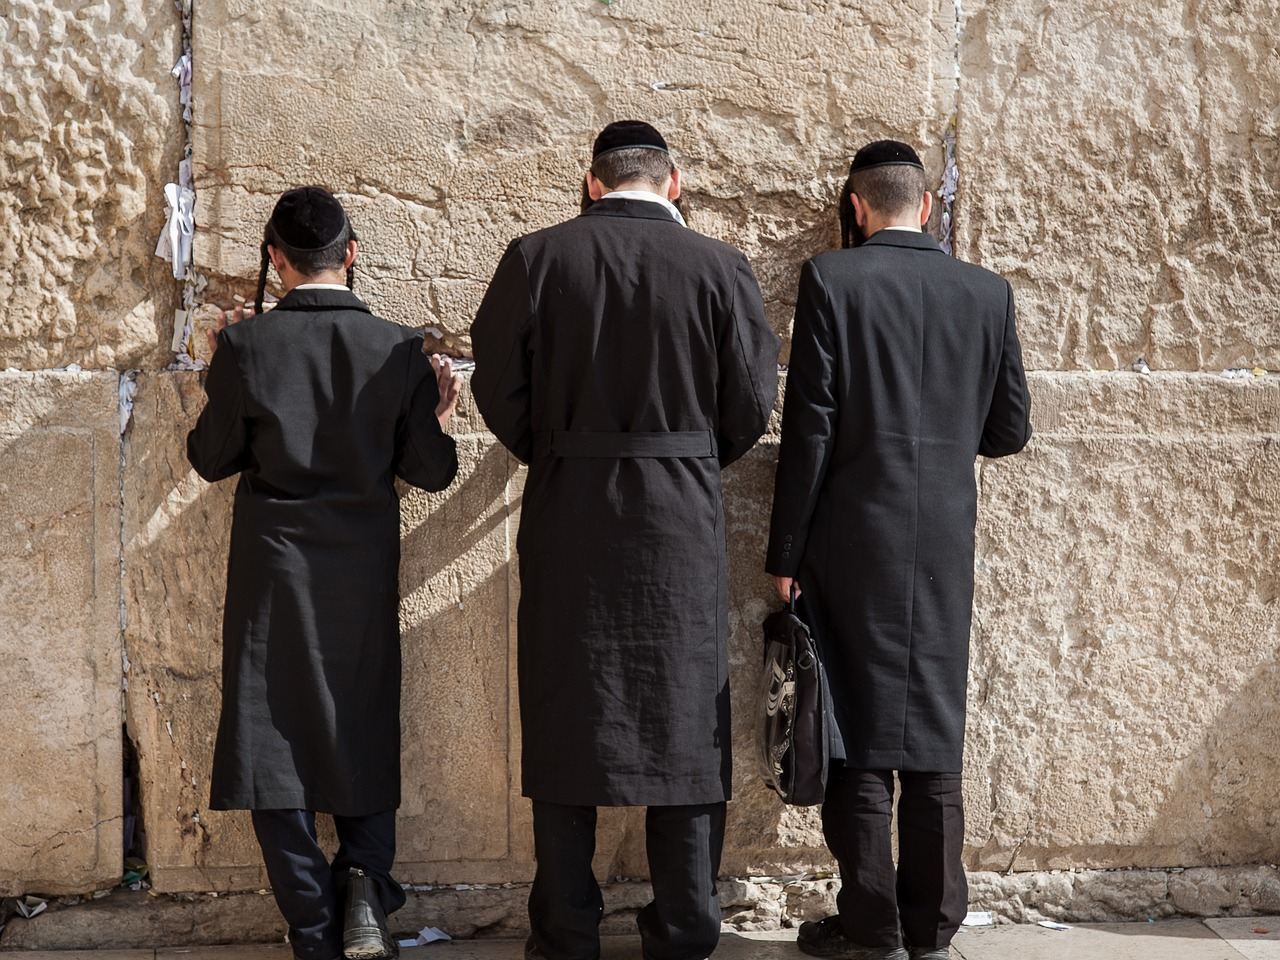 Three Jewish men pray at the Western Wall in Jerusalem. Creative Commons.